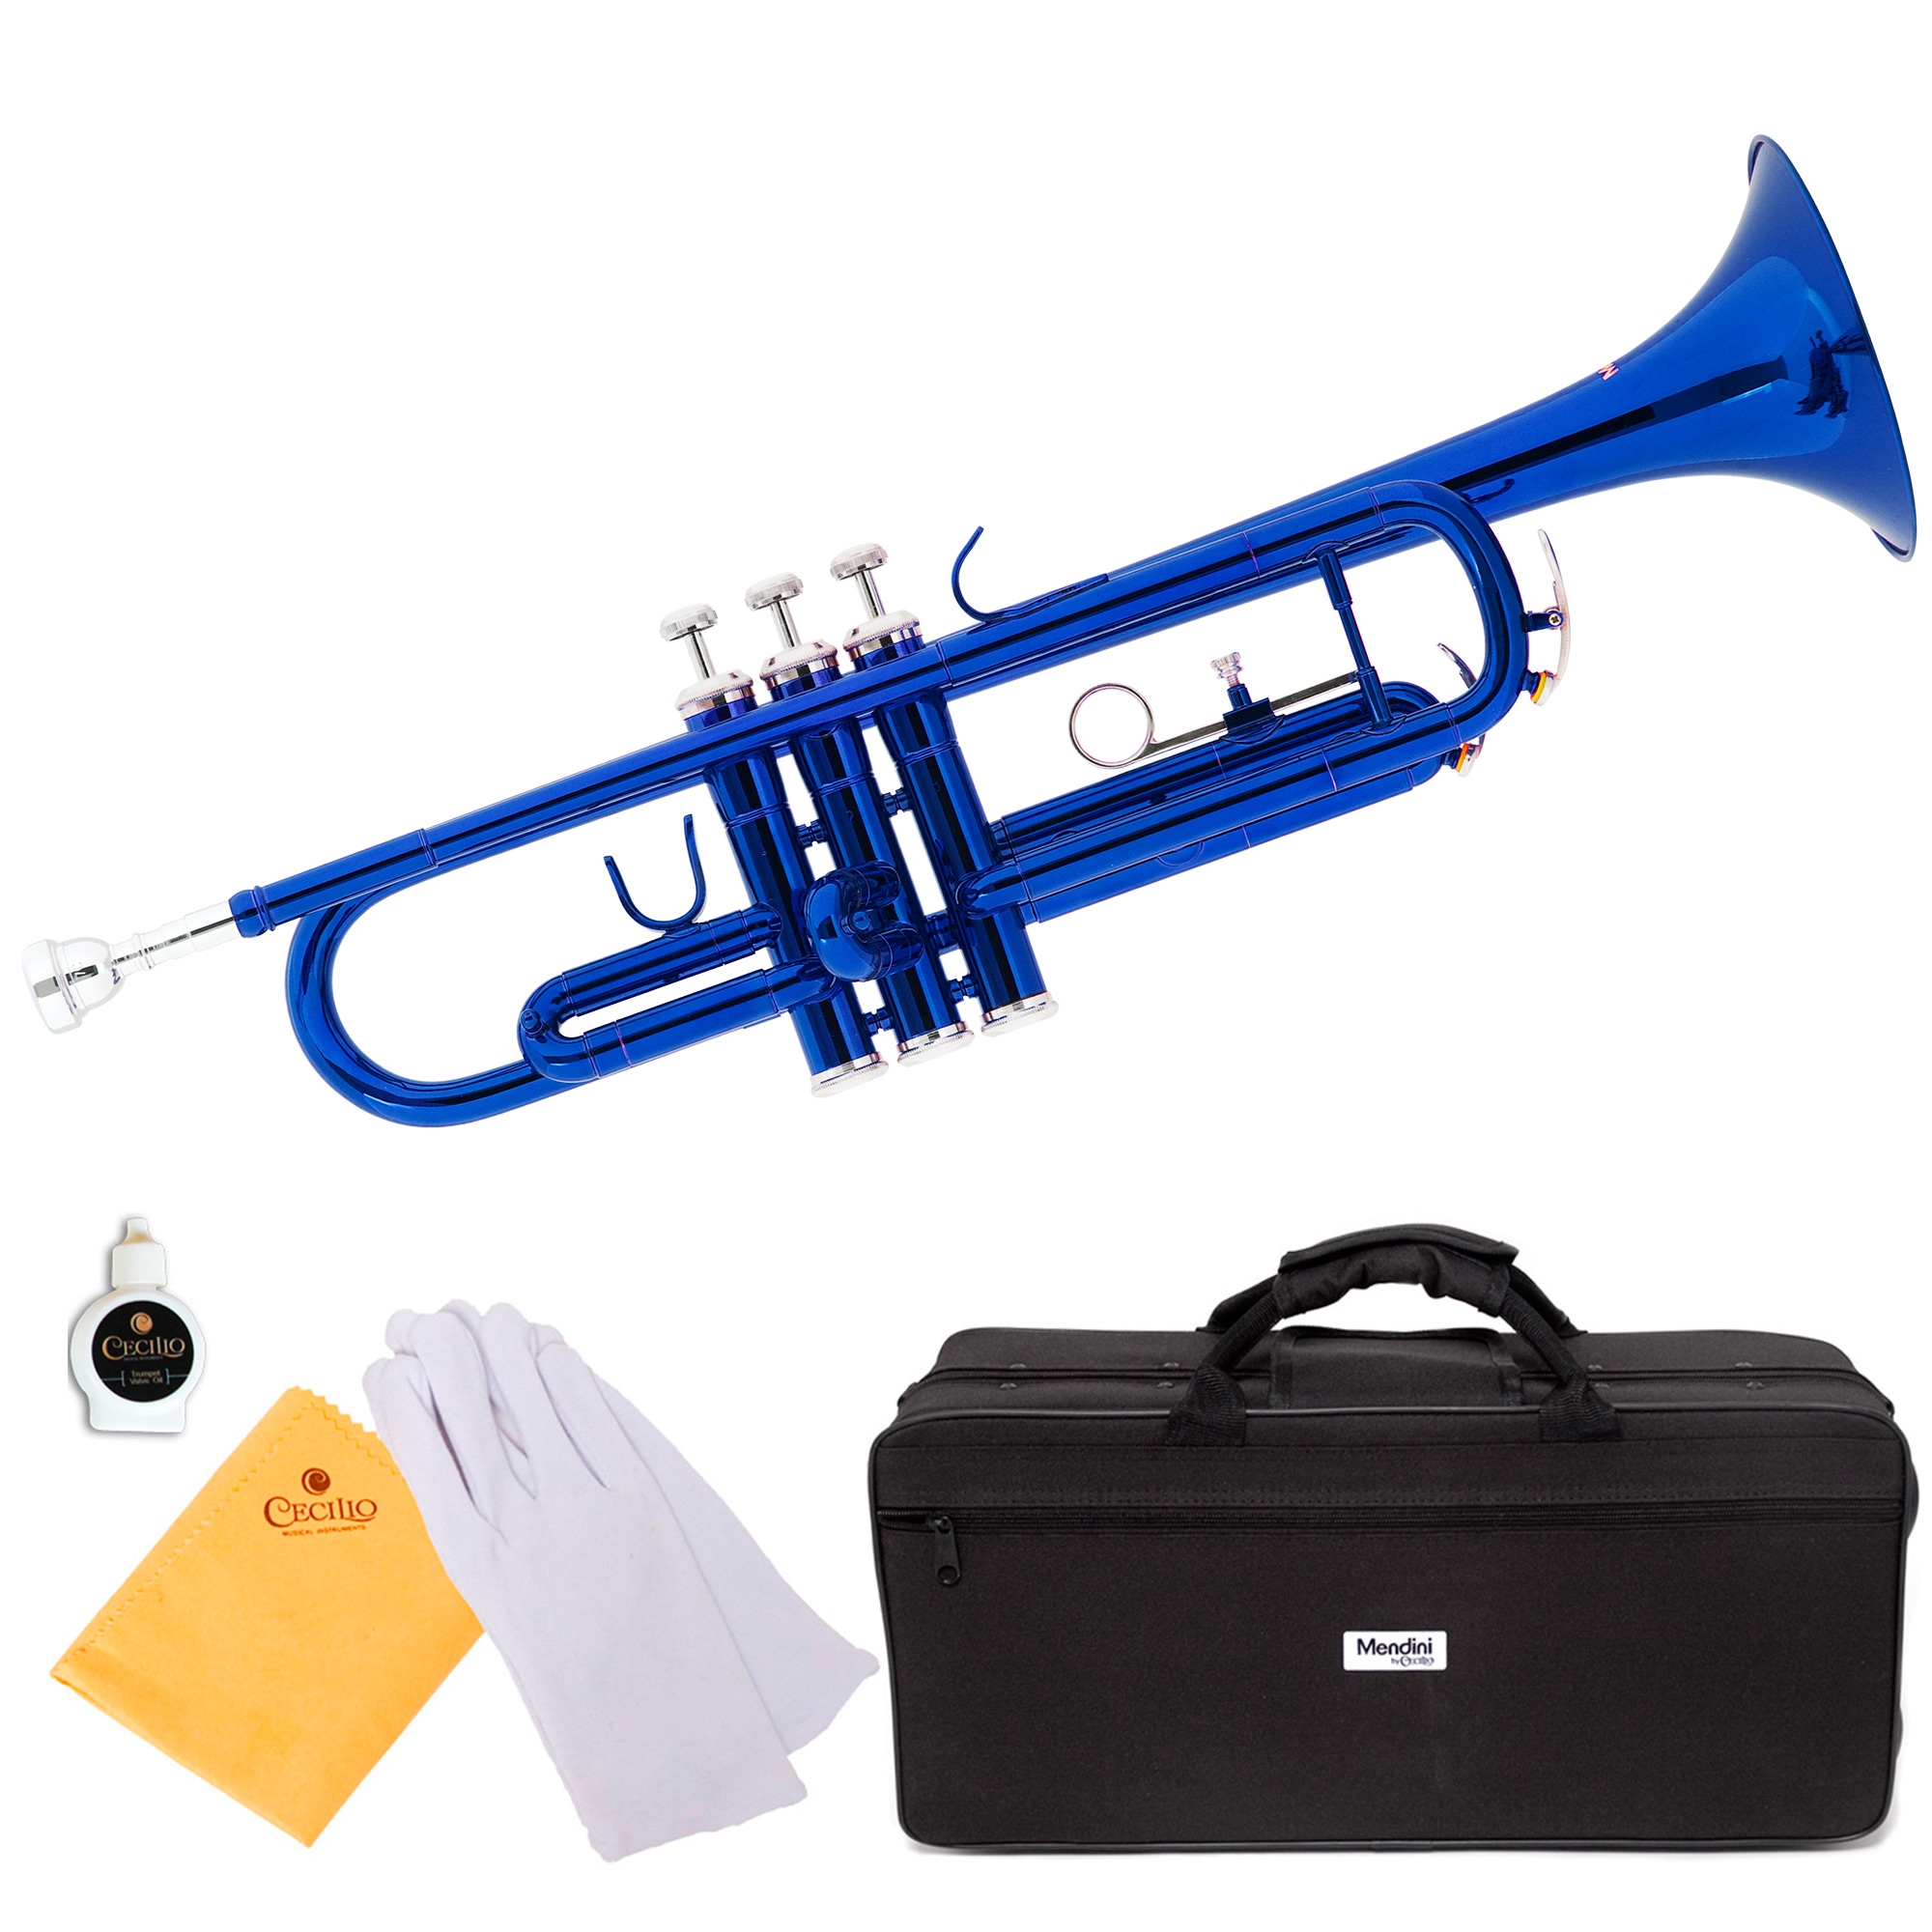 Mendini by Cecilio MTT-BL Blue Lacquer Brass Bb Trumpet with Durable Deluxe Case and 1 Year Warranty